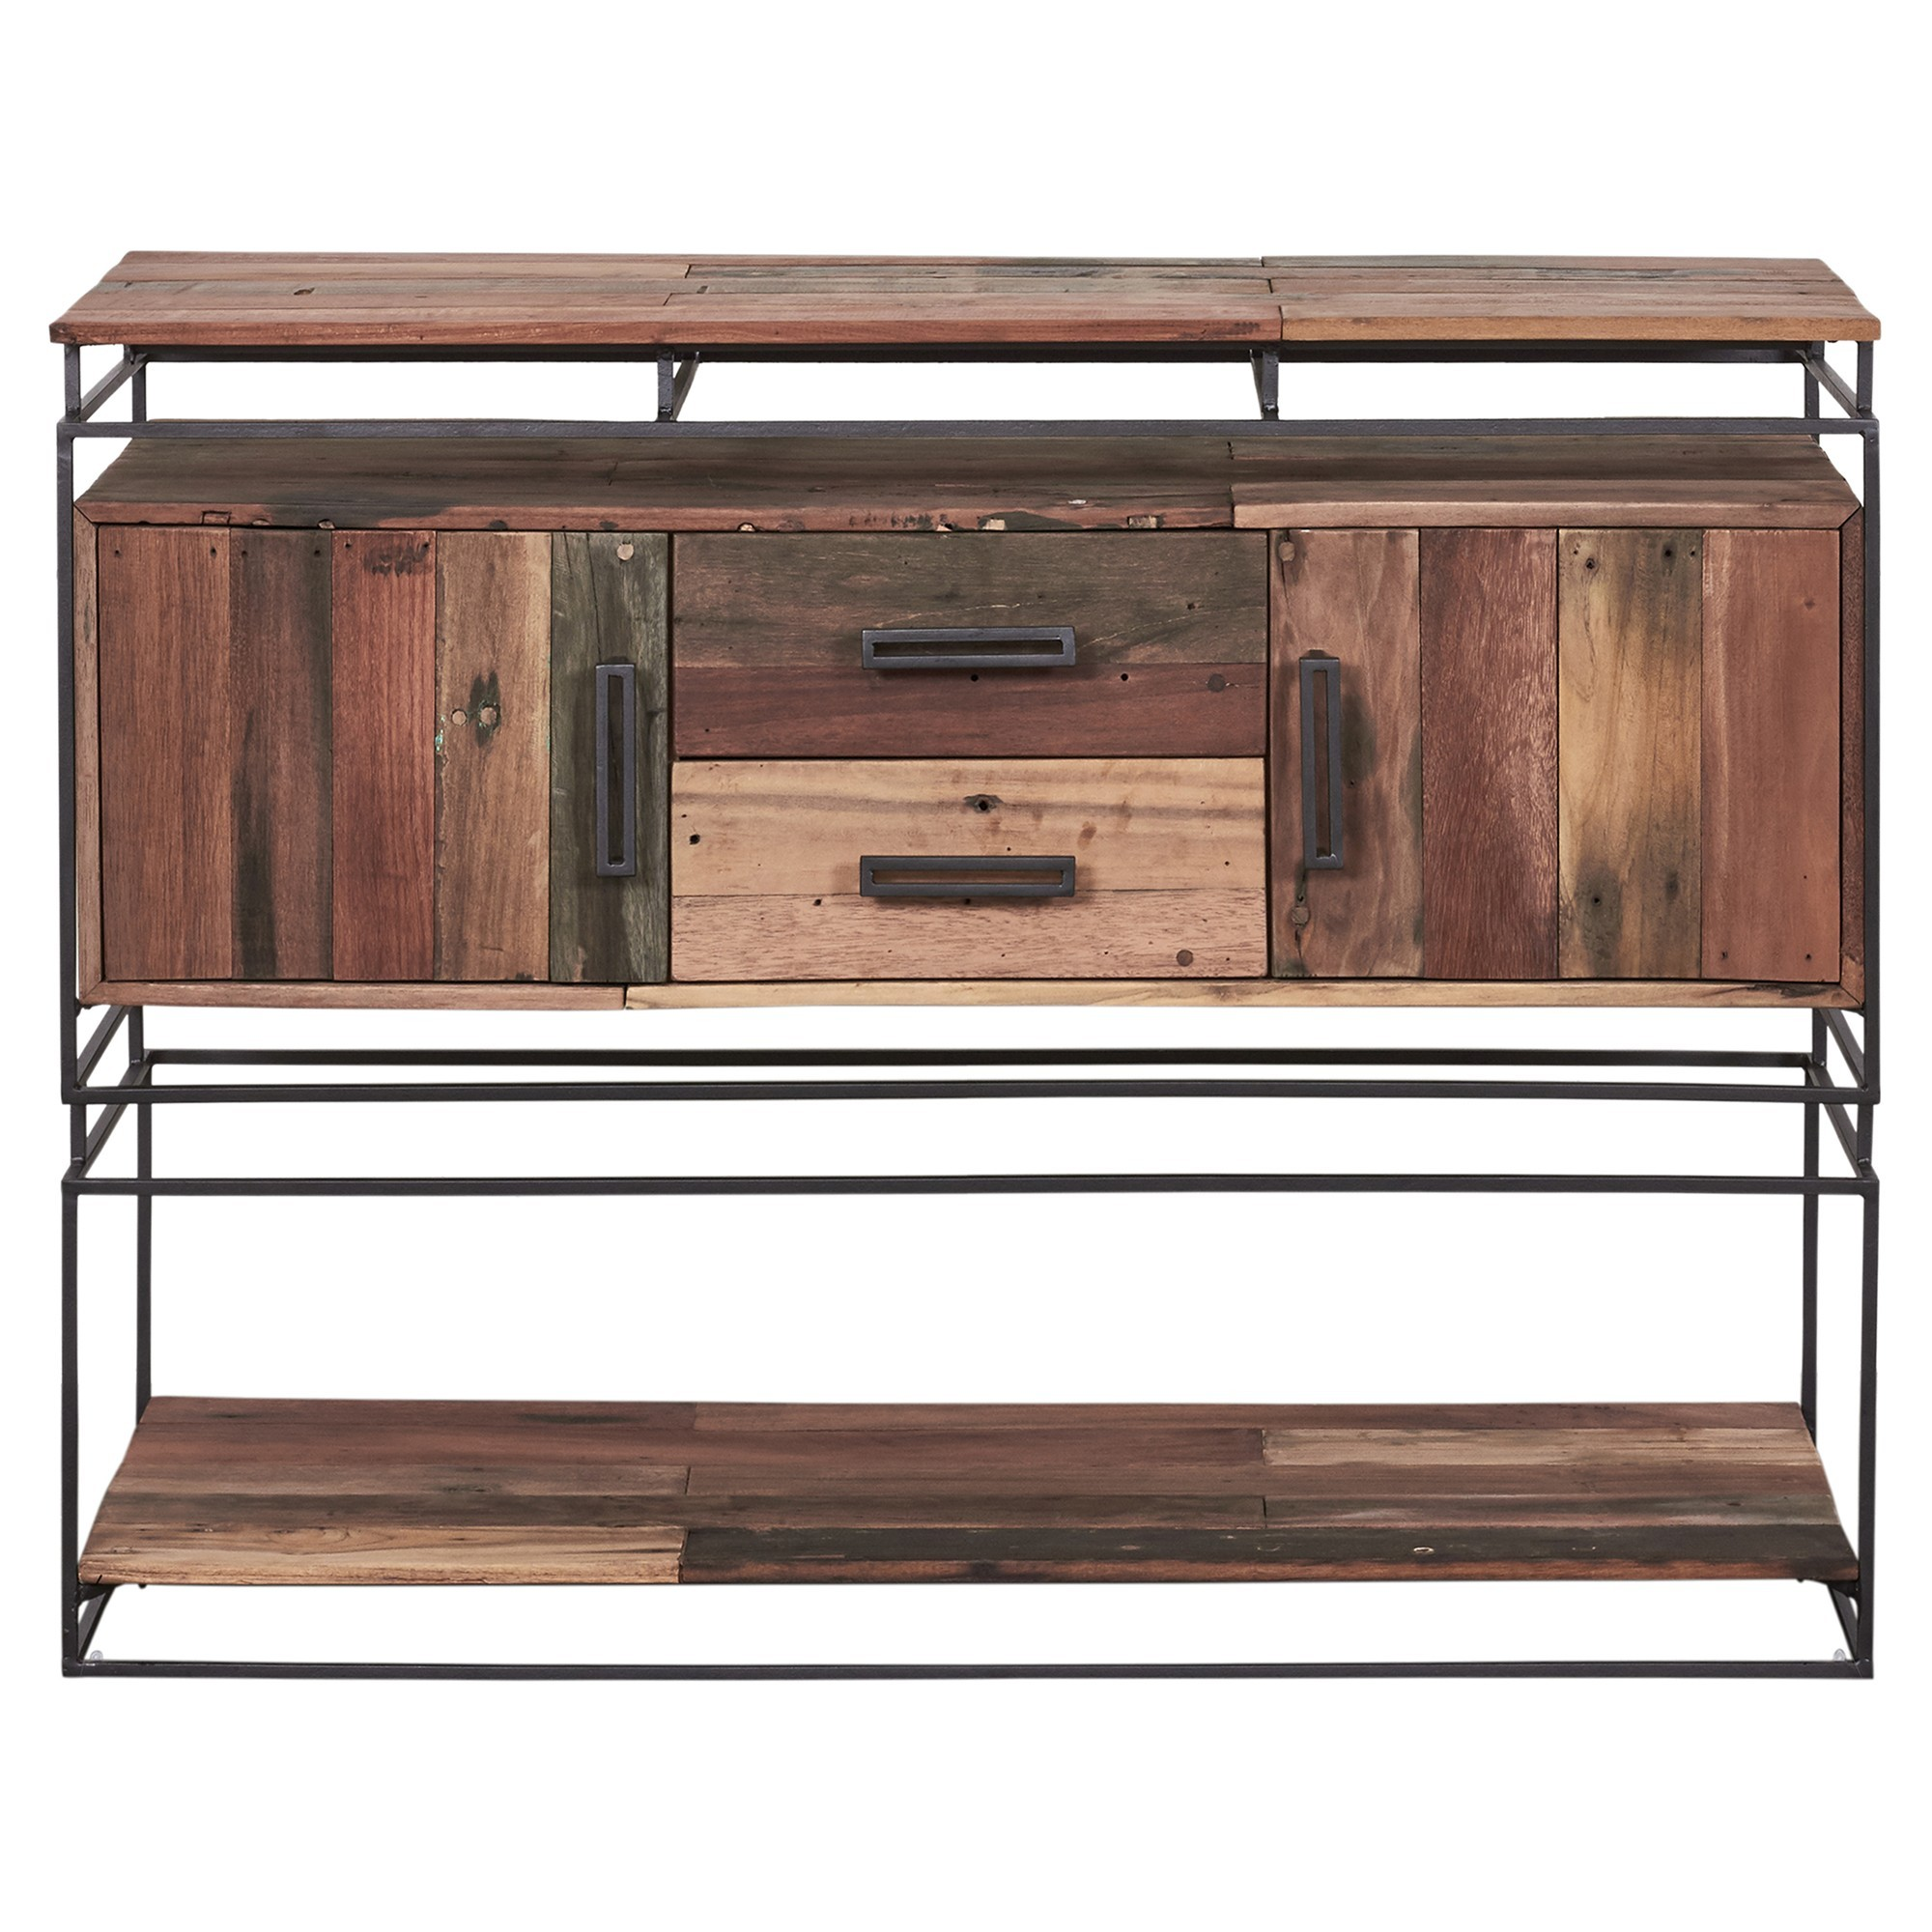 Nako Commercial Grade Reclaimed Timber & Iron 2 Door 2 Drawer Console Table, 120cm